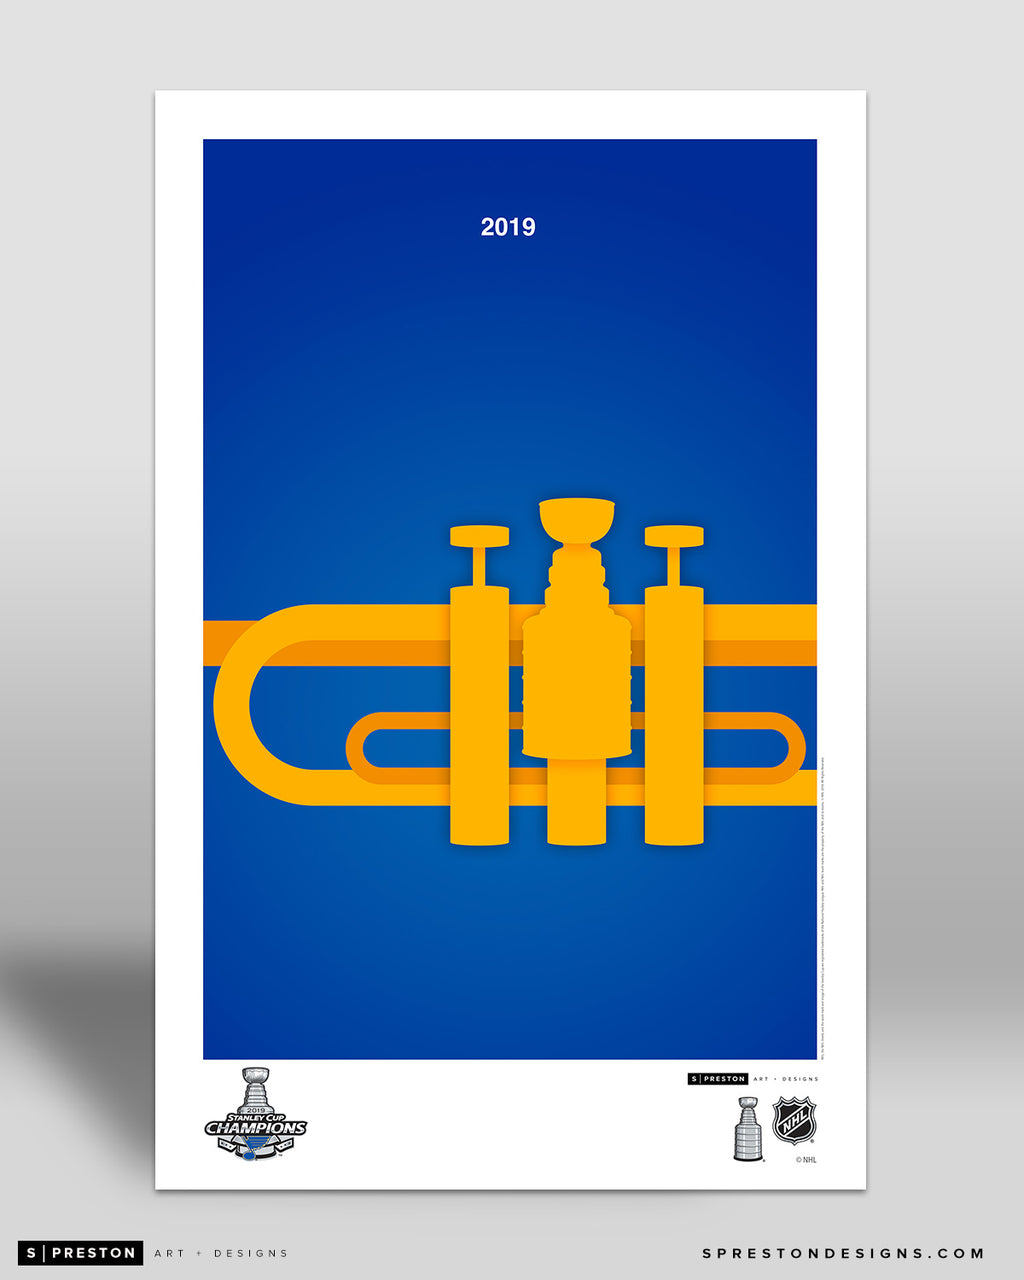 Minimalist Stanley Cup 2019 Art Poster - CLEARANCE